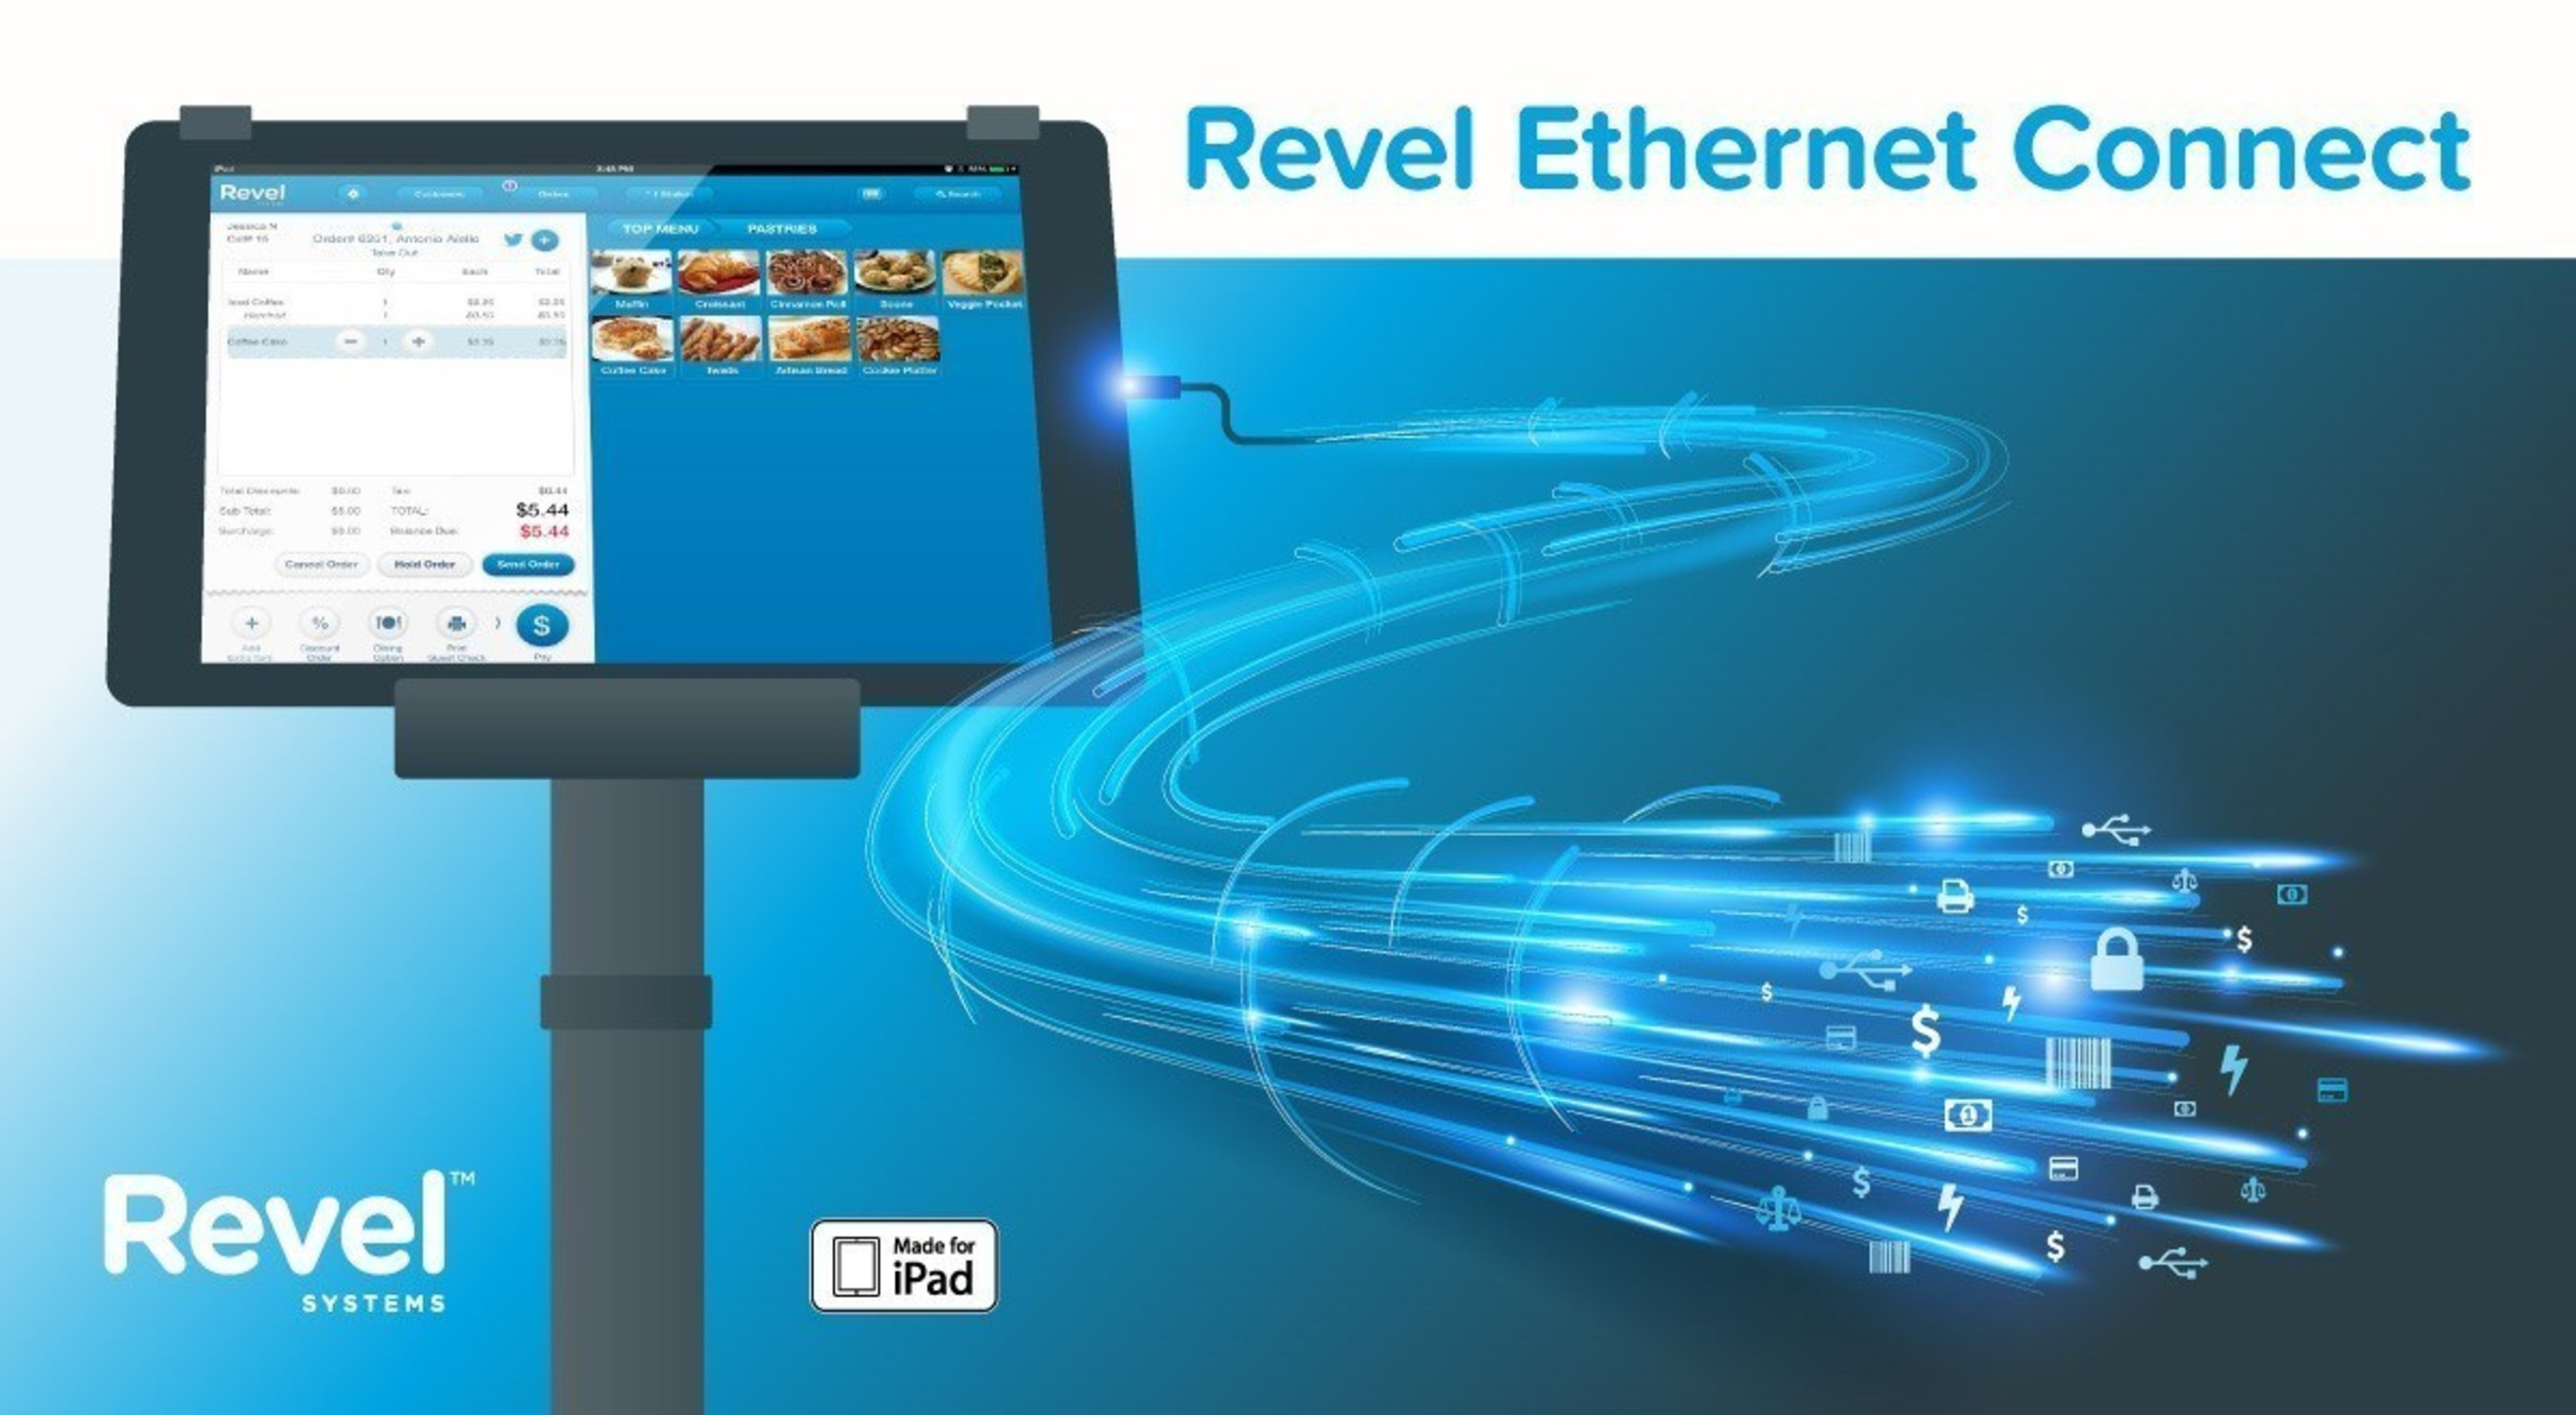 Revel Systems Adds a Secure, Cabled Solution to Its iPad POS System